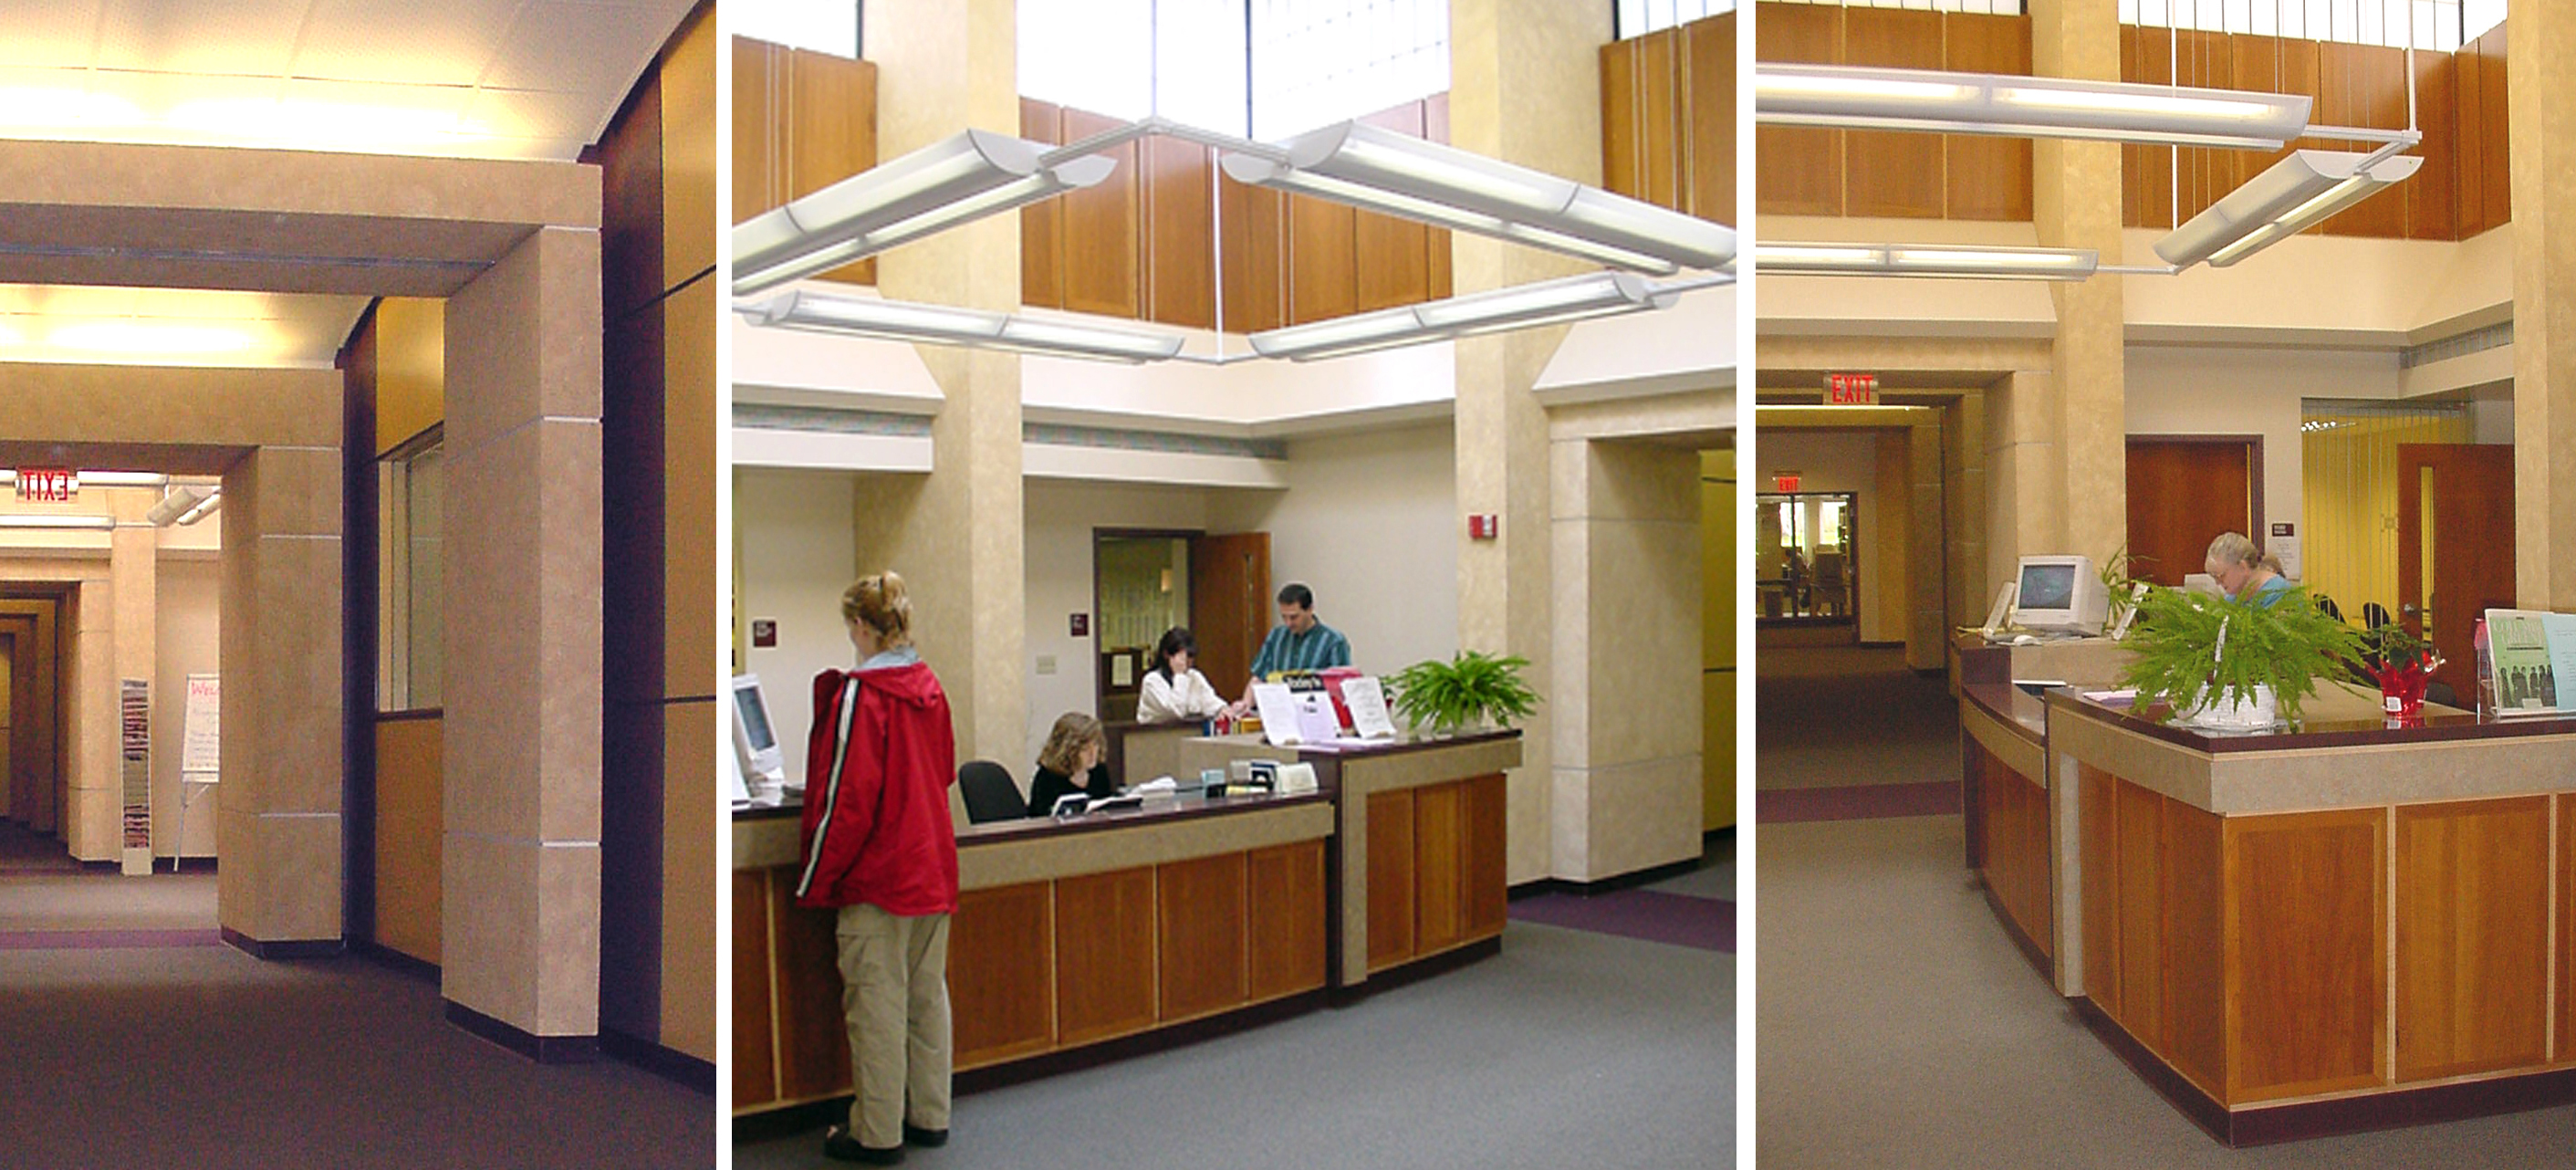 CG_Community_College_Architecture_Student_Commons_Details.jpg